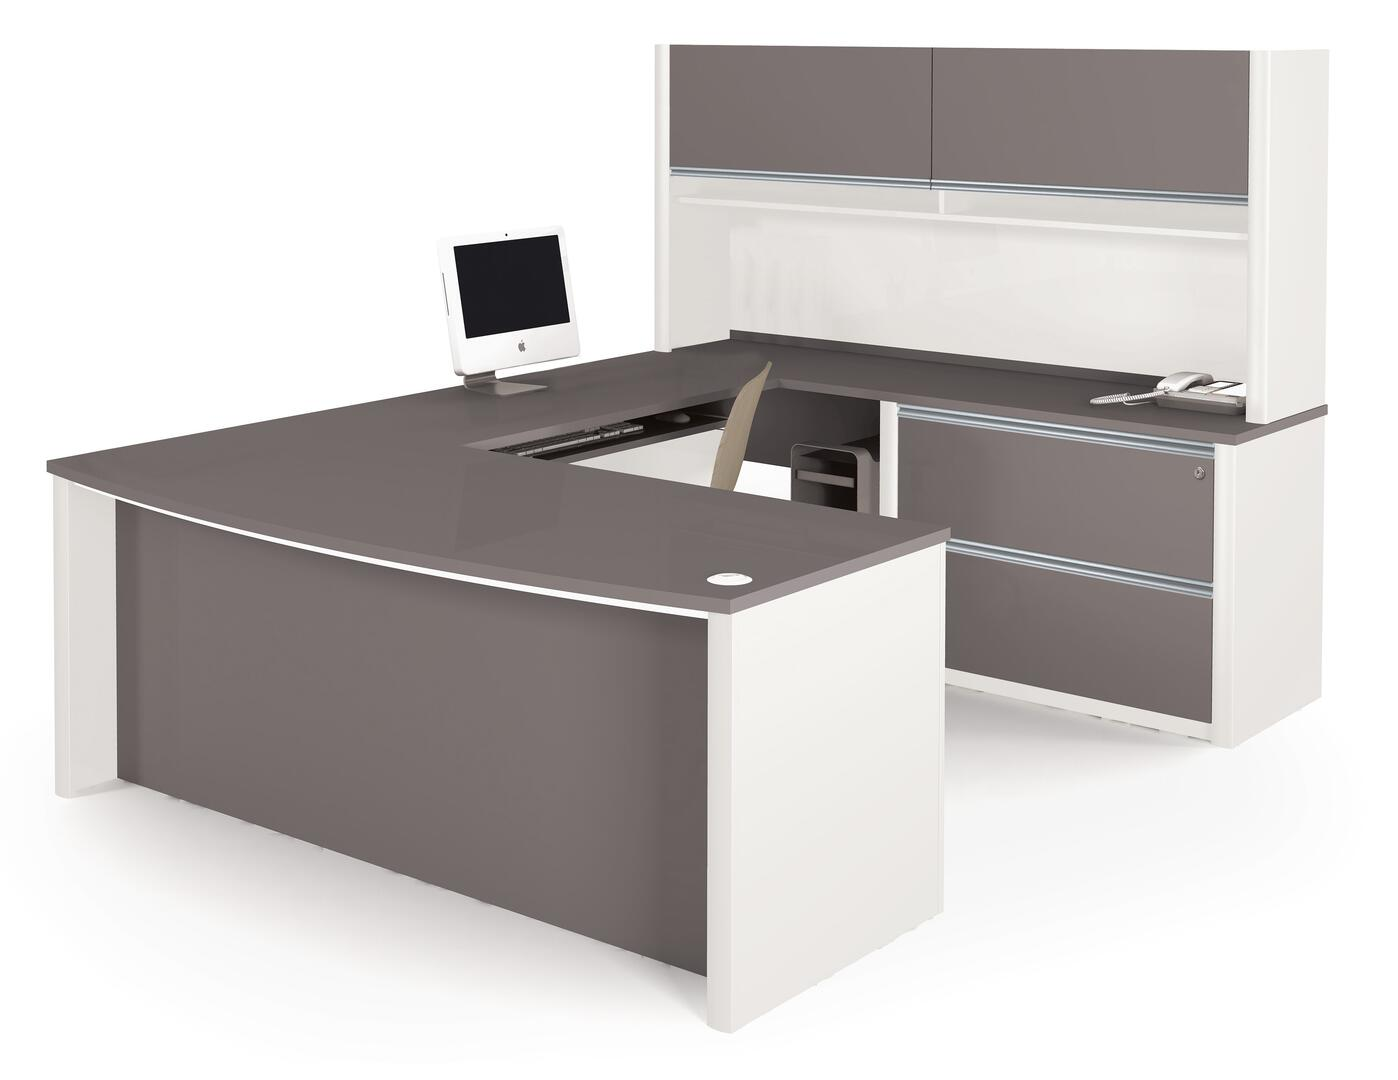 Bestar furniture 9387859 modern u shape office desk for Furniture connection